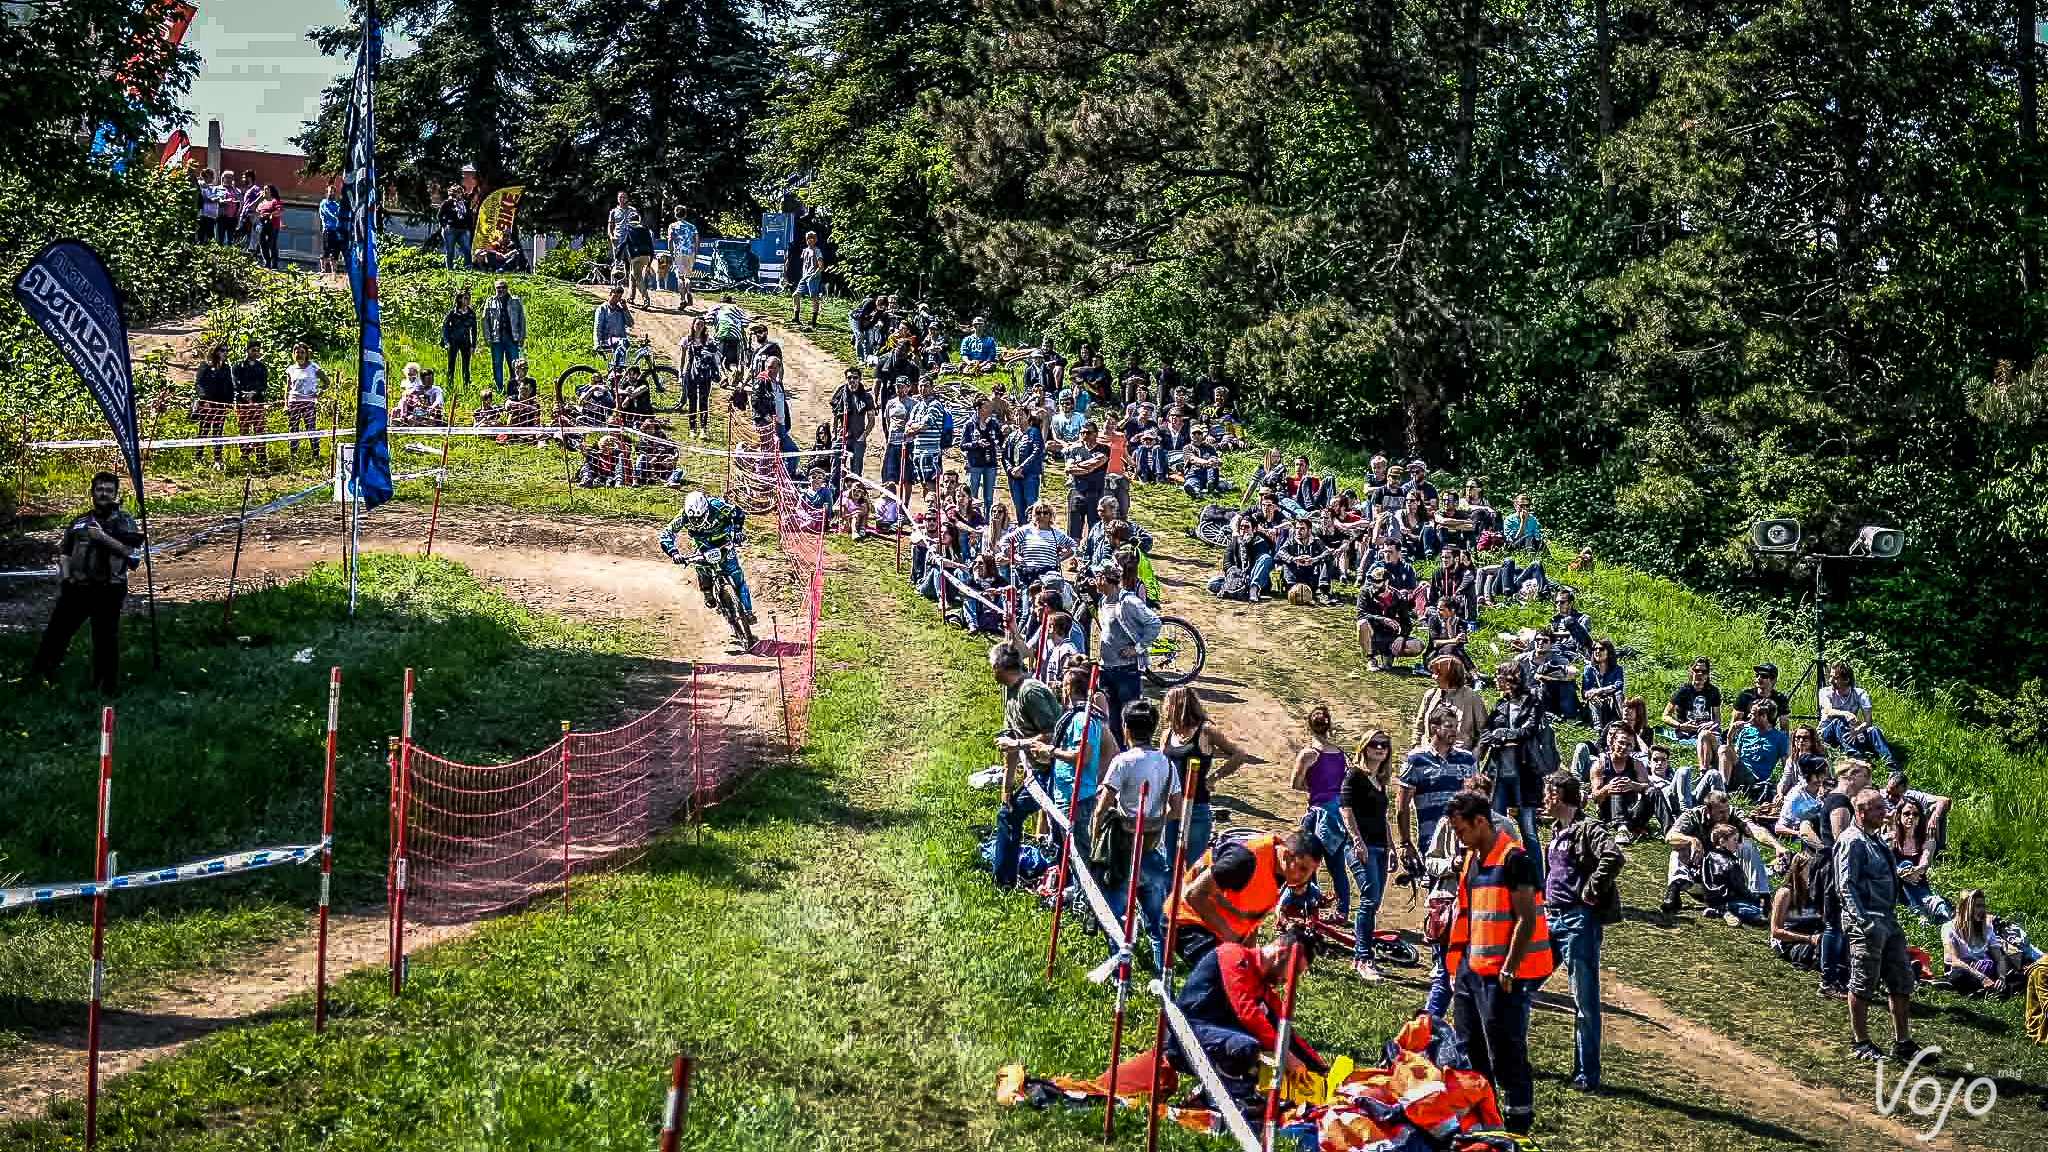 Coupe-France-DH_Lyon_LaSarra-copyright-Romain-Laurent-VojoMag-19